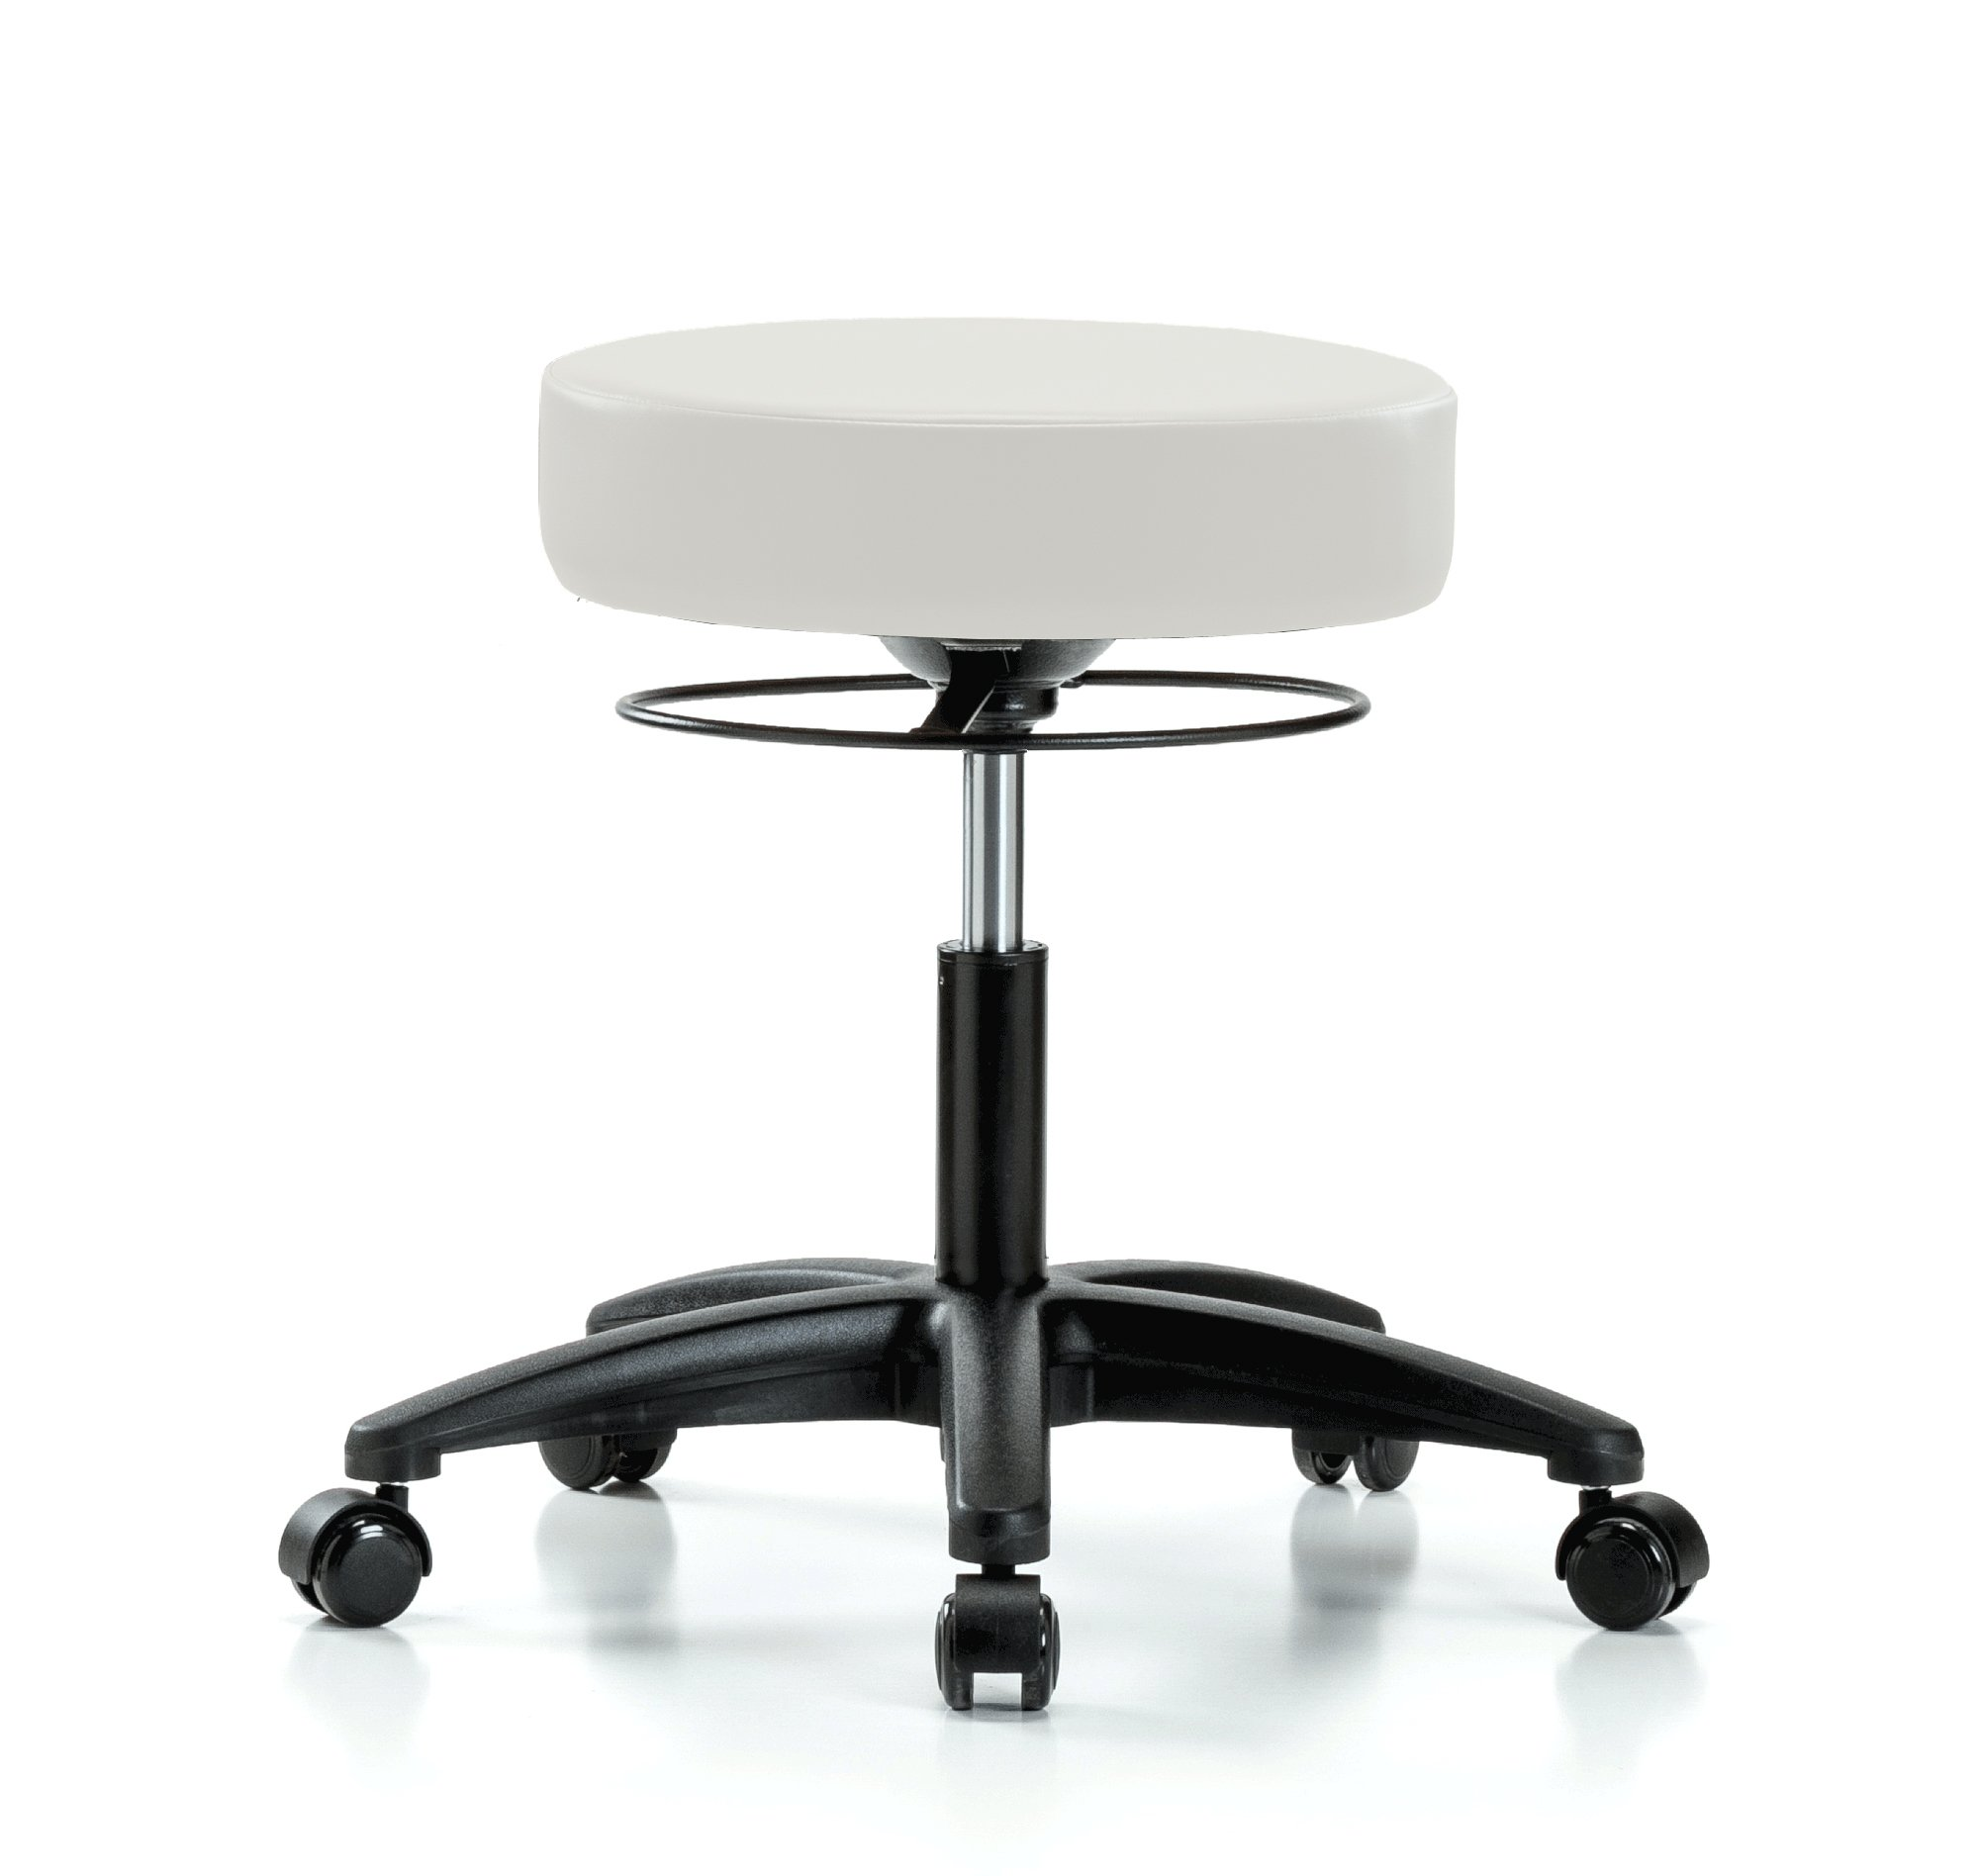 Perch Stella Rolling Adjustable Stool Medical Salon Spa Massage Tattoo Office 18.5'' - 24'' (Soft Floor Casters/Adobe White Vinyl)